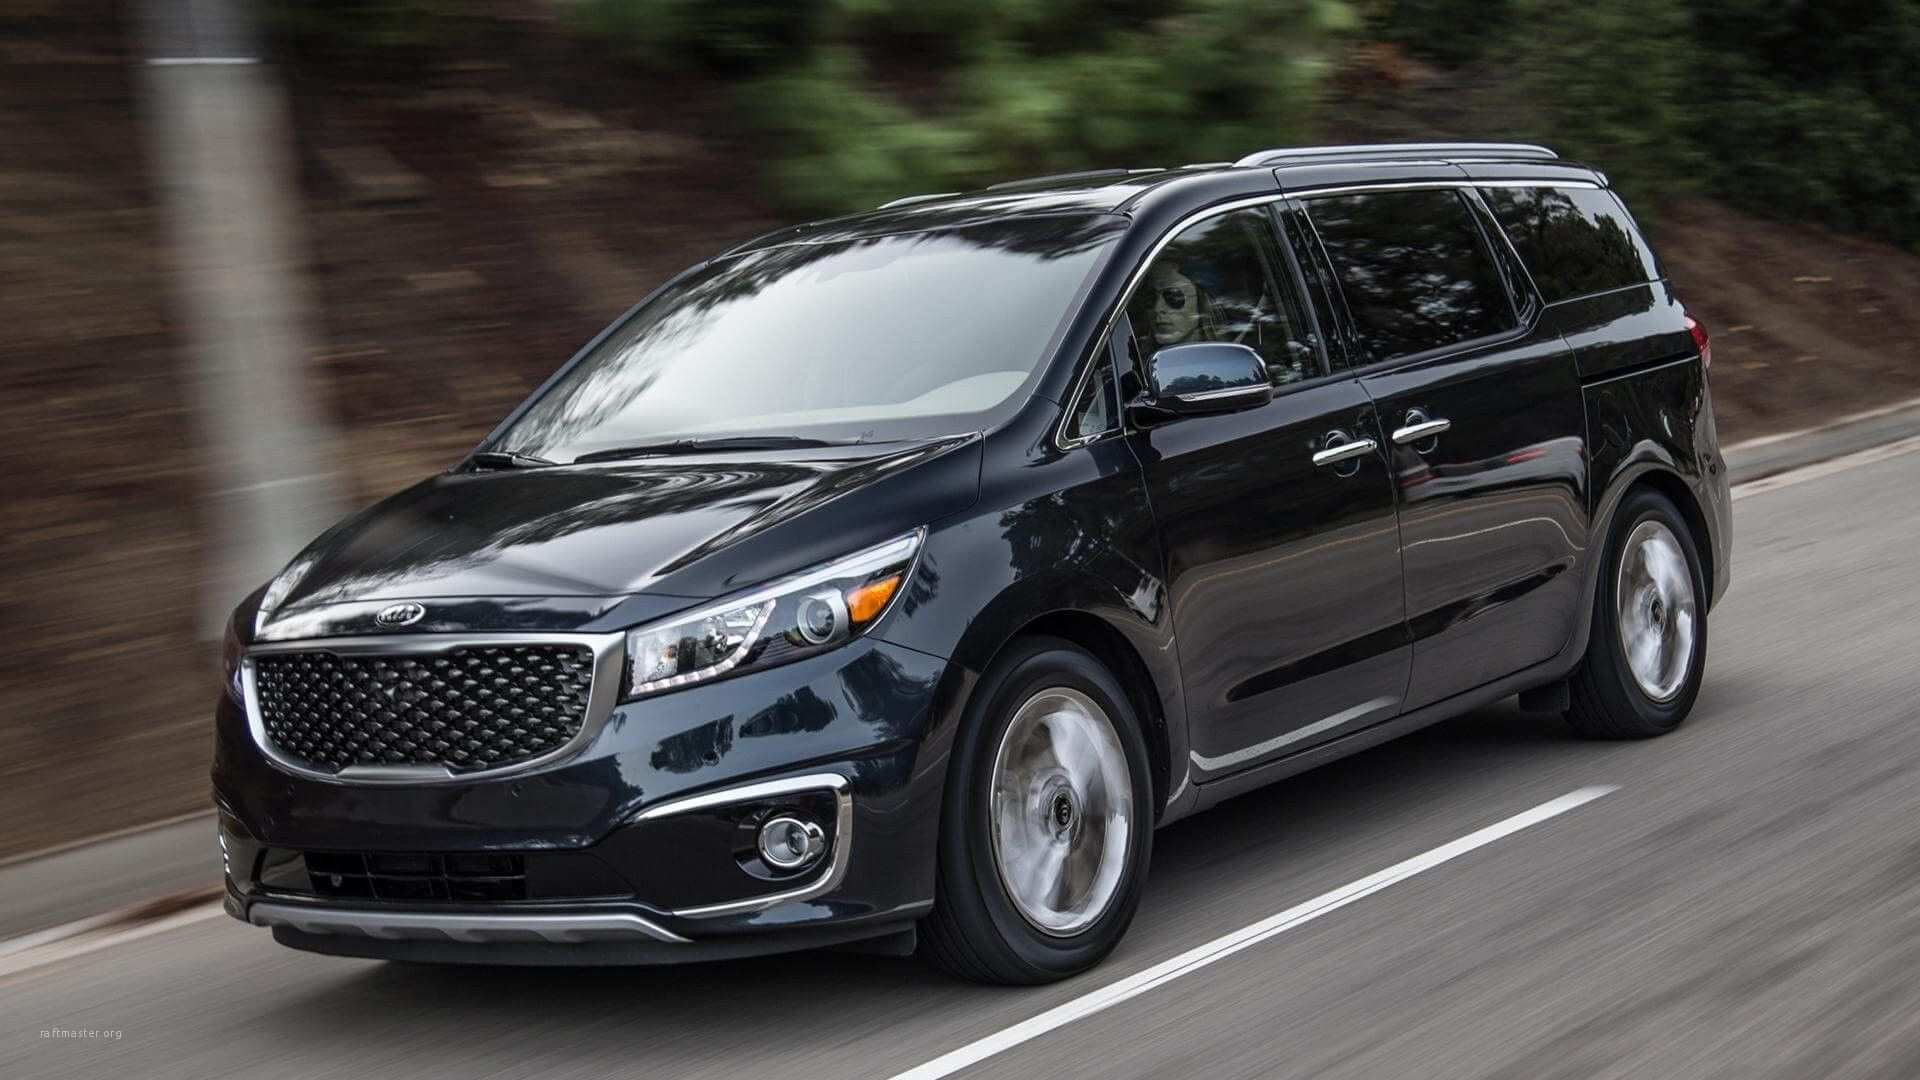 75 The 2020 Kia Carnival Price